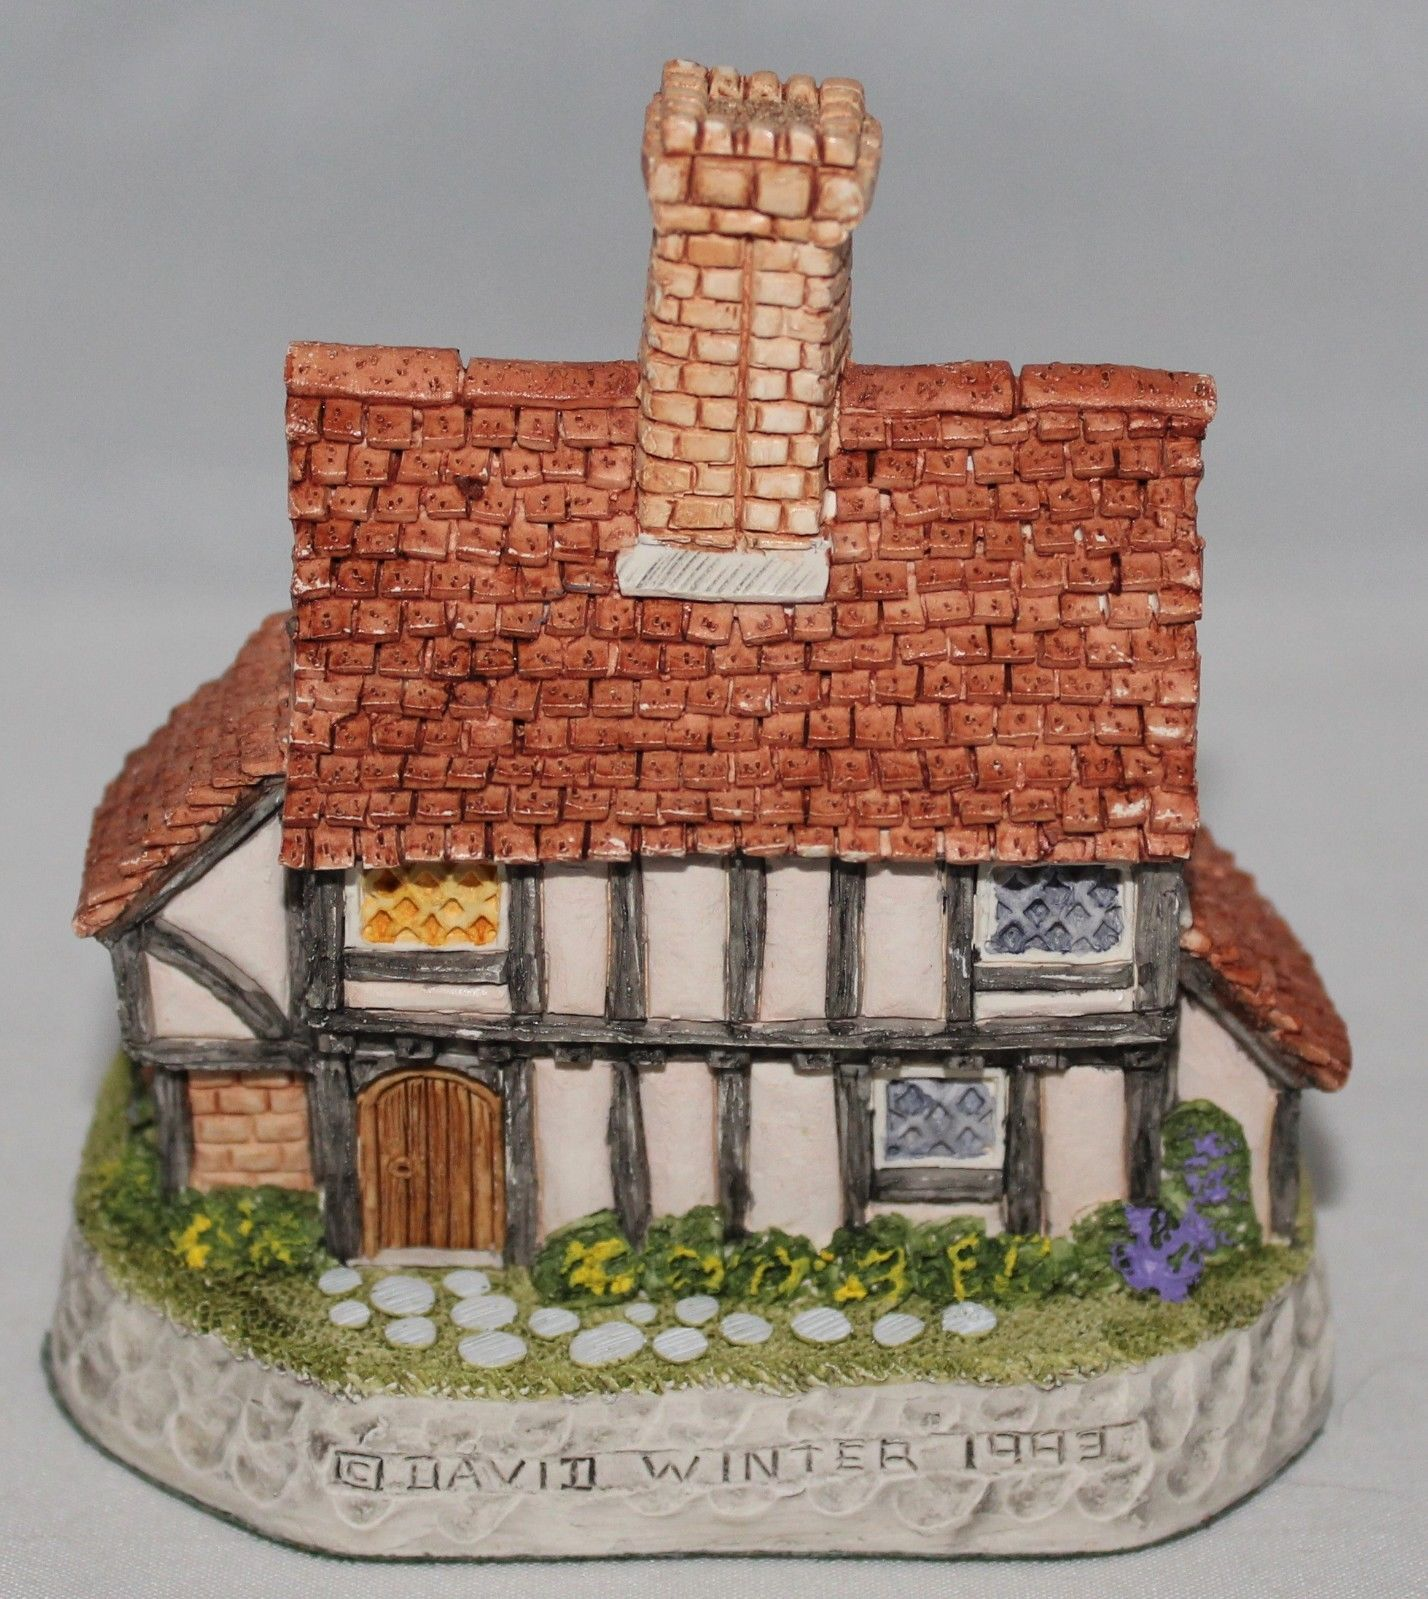 The Rectory David Winter Cottages English Village Collection 1993 English Village Cottage Village